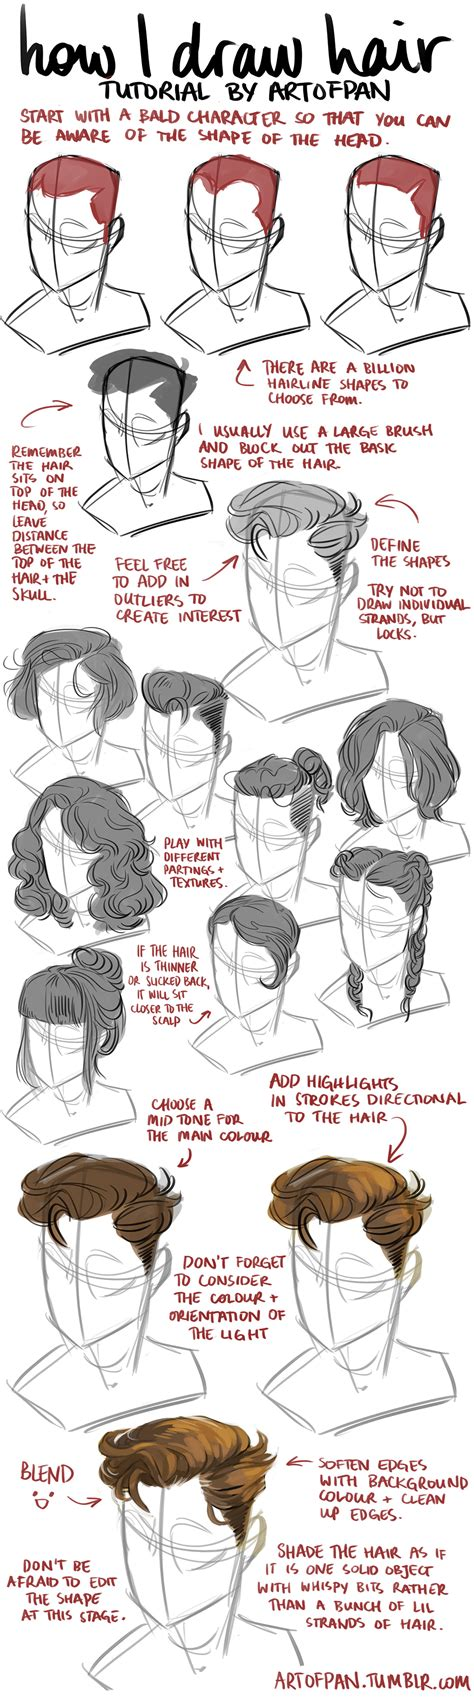 tutorial design character hair tutorial by artofpan on deviantart